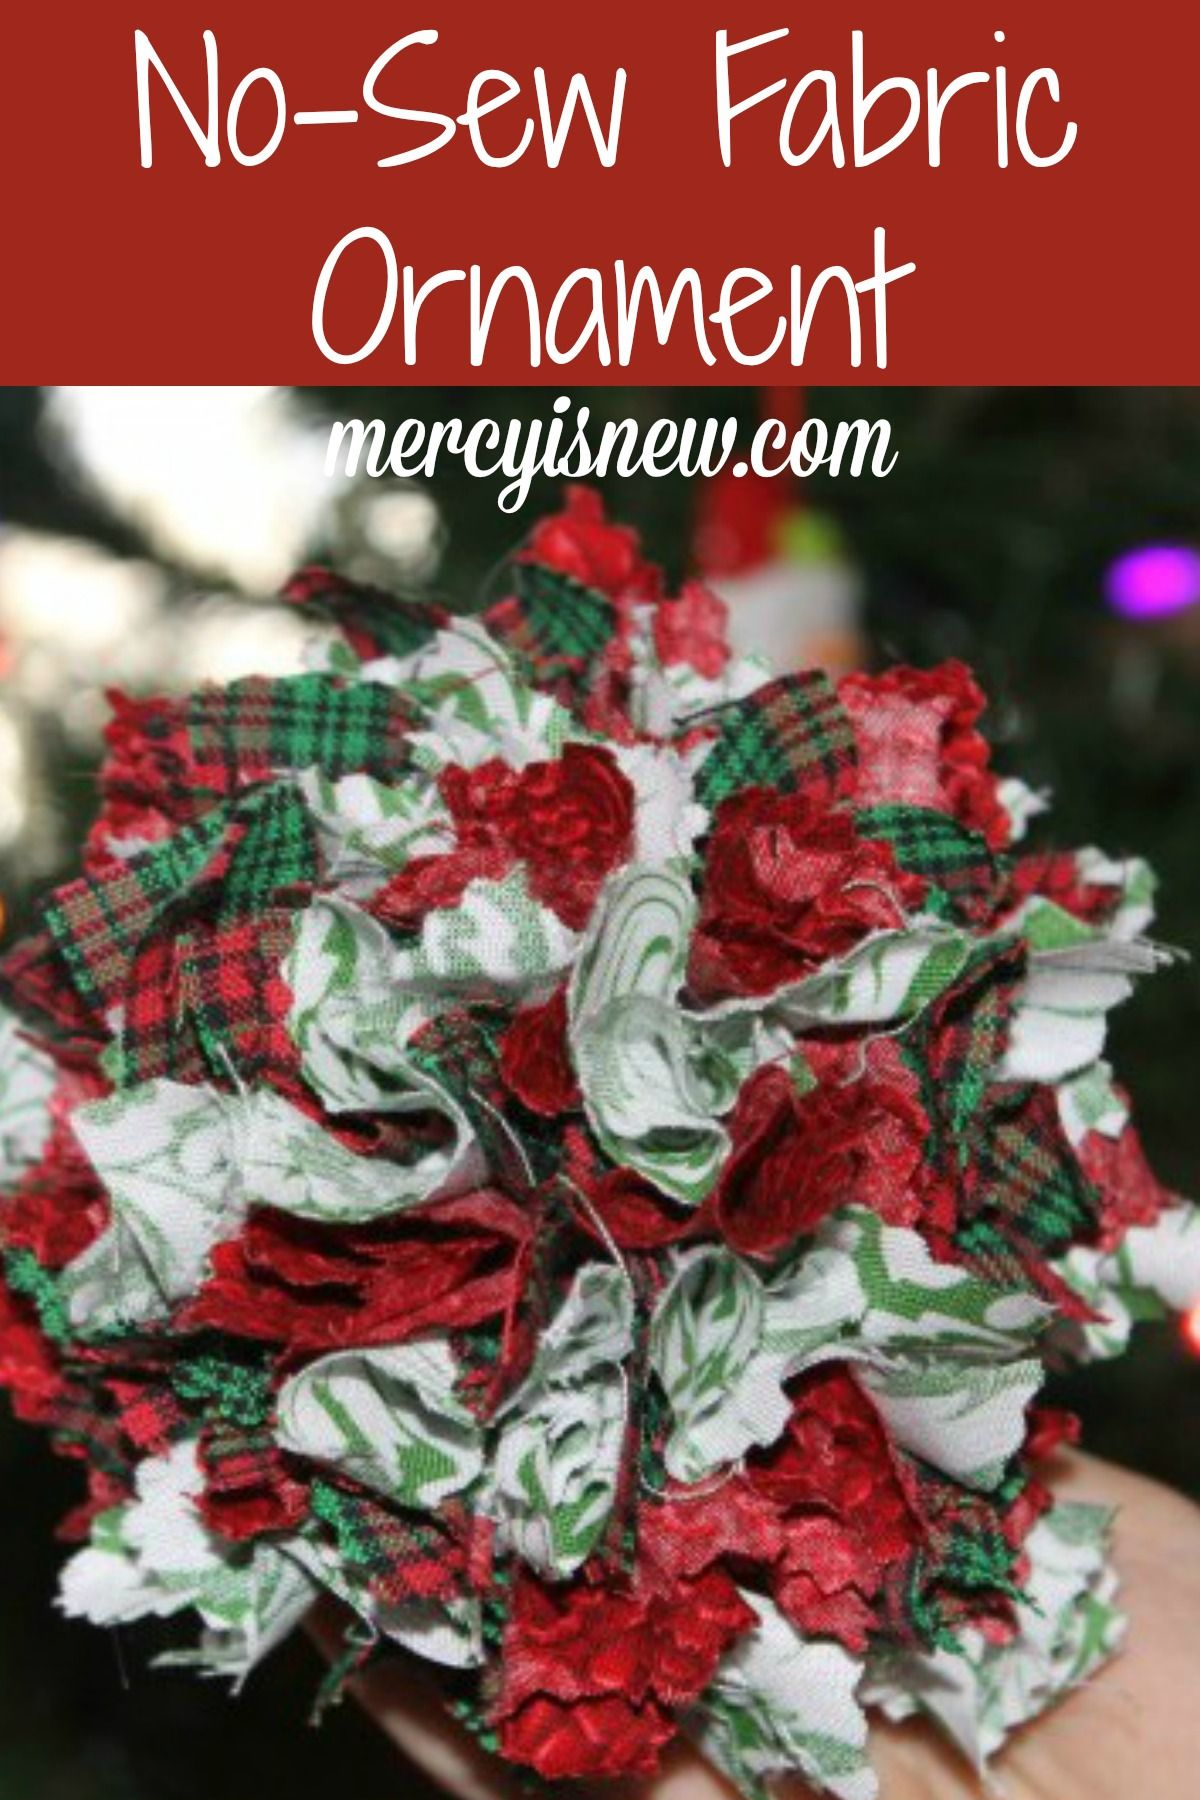 No-Sew Fabric Ornament Tutorial - super easy and lovely ornament ...